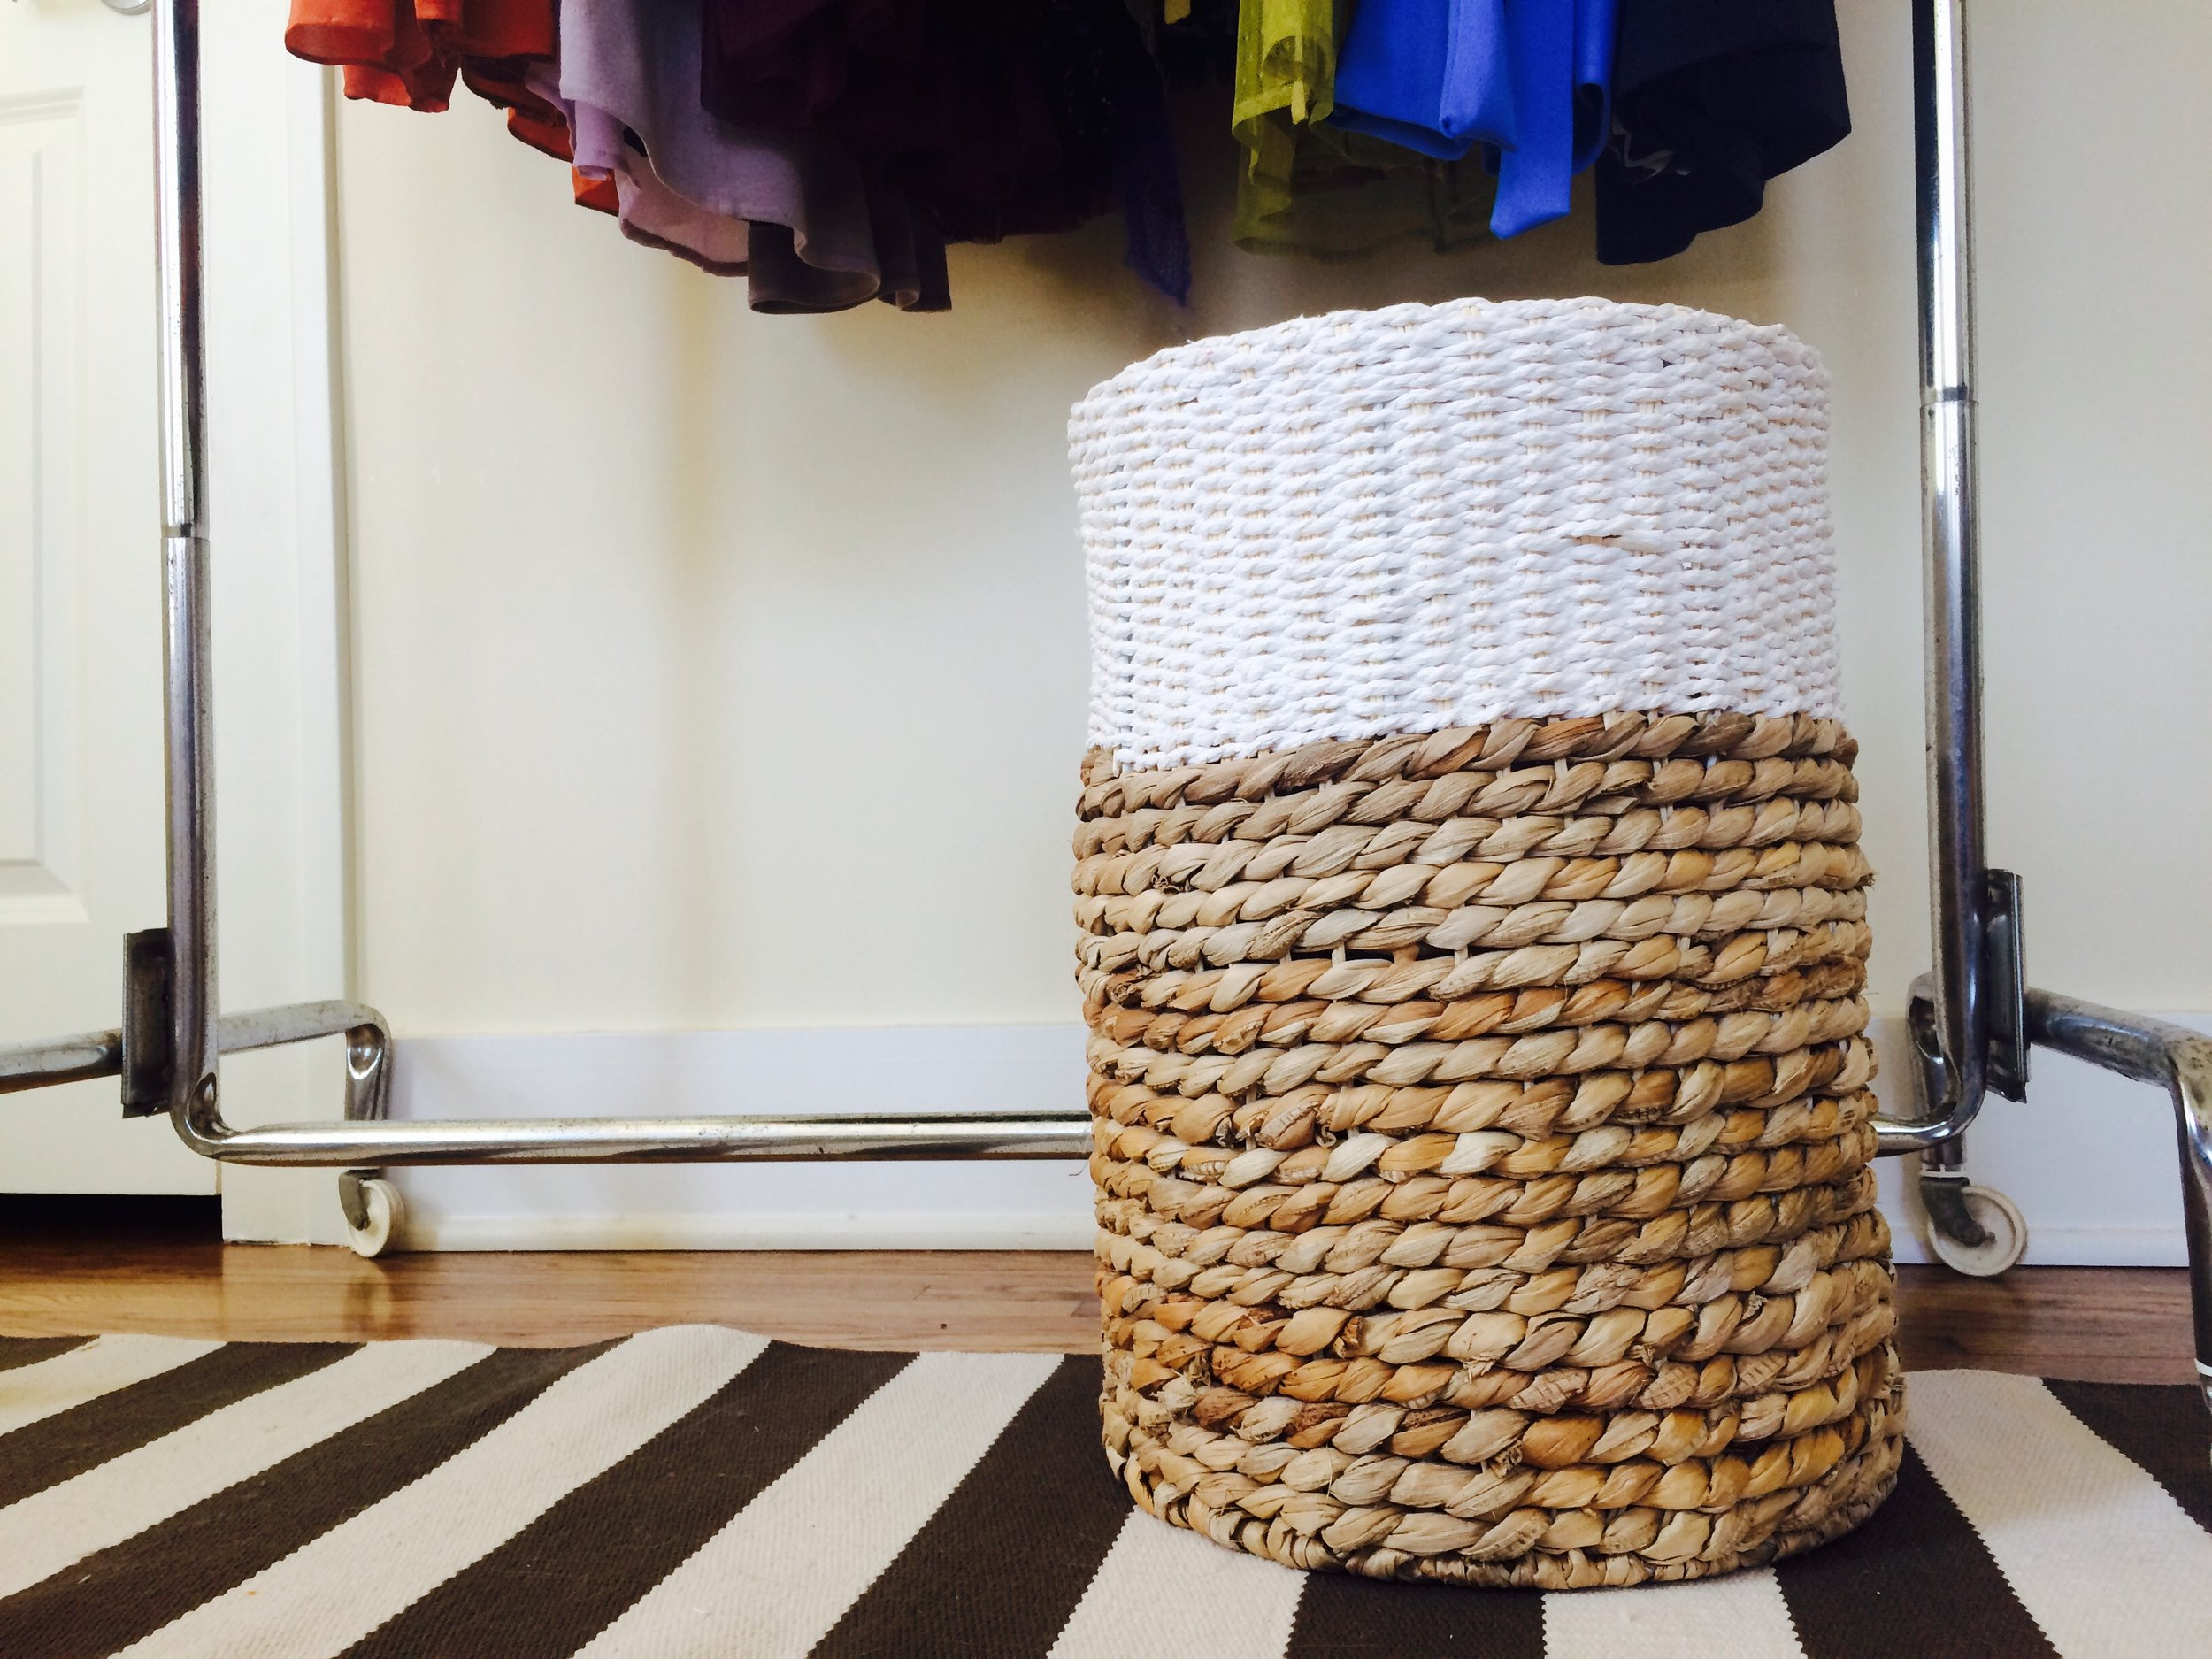 A breakup basket should be just as stylish and functional as the rest of your custom closet. Select one you'll love to see and use every day.  Call Closets of Tulsa  today for a FREE consultation and 3-D closet design:  918.609.0214